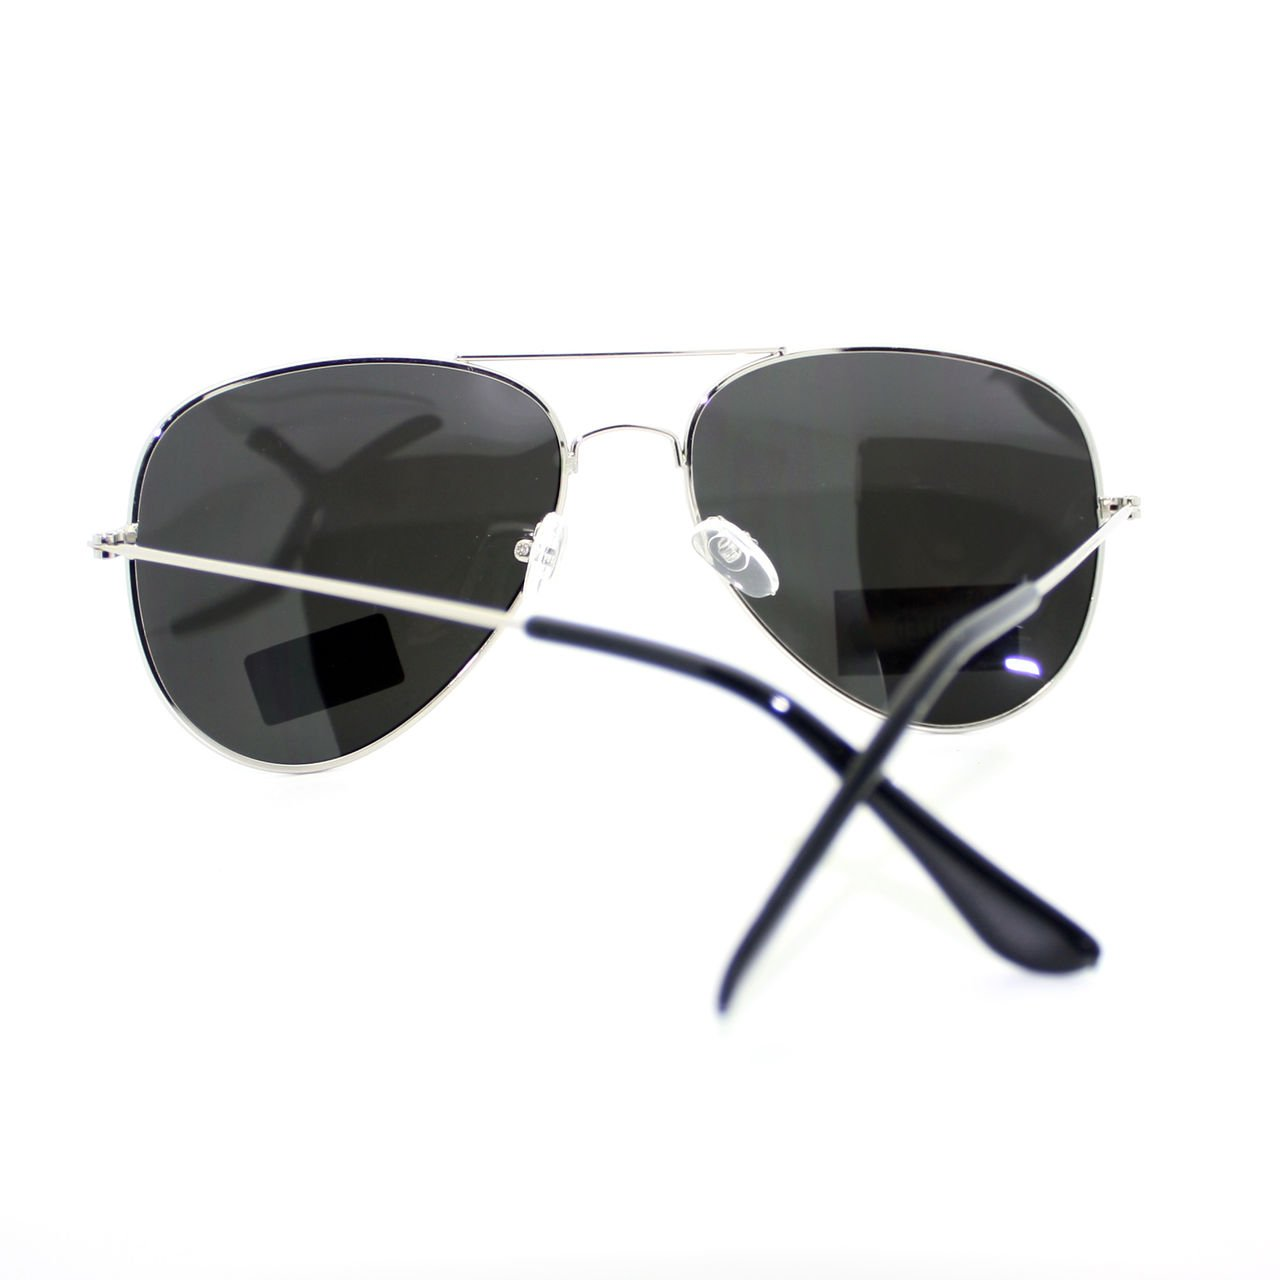 0cc3a85ba5 Amazon.com  Air Force Polarized Silver Mirror Lens Police Style Cop Pilot  Sunglasses  Clothing